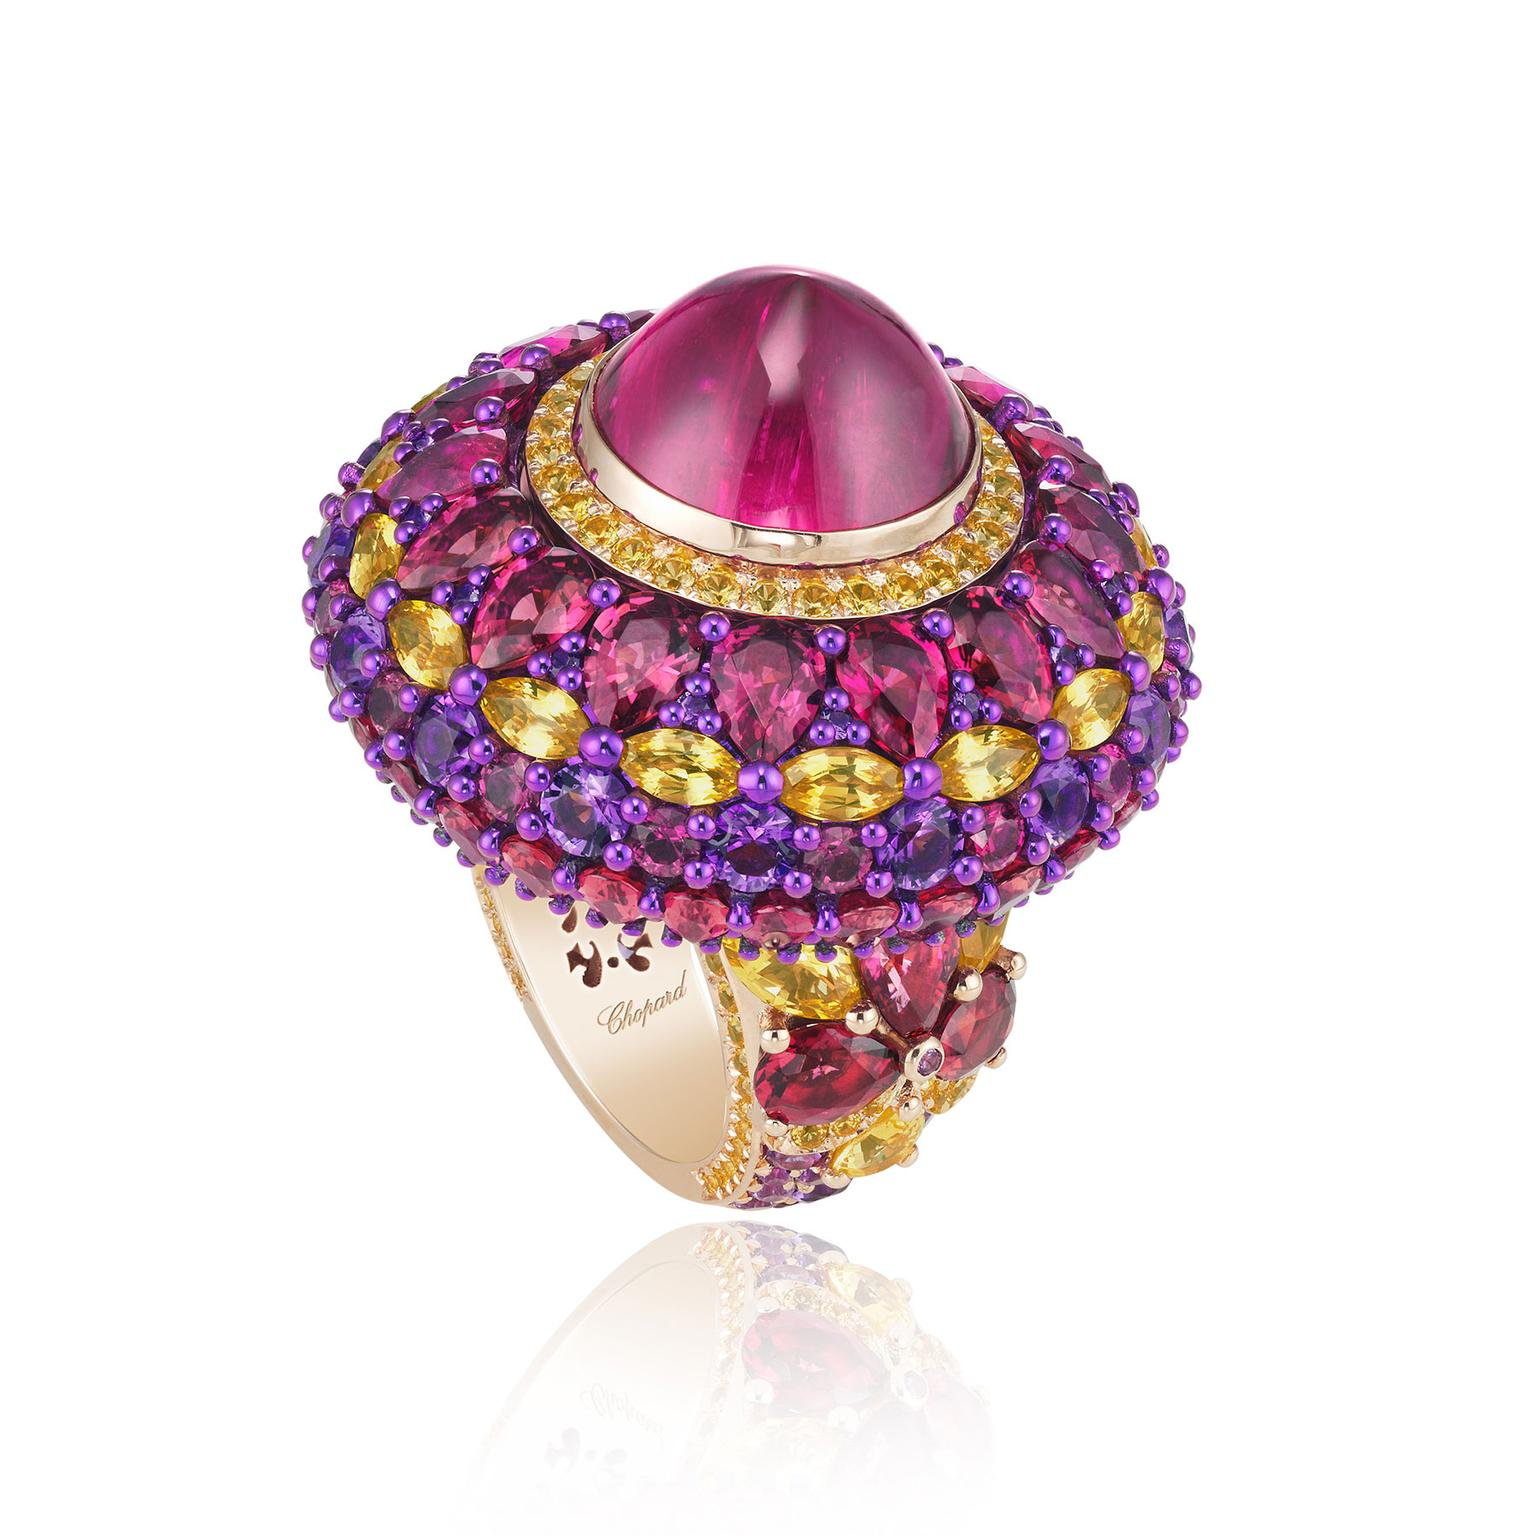 Latest Chopard Red Carpet Jewellery Debuts At Cannes Film